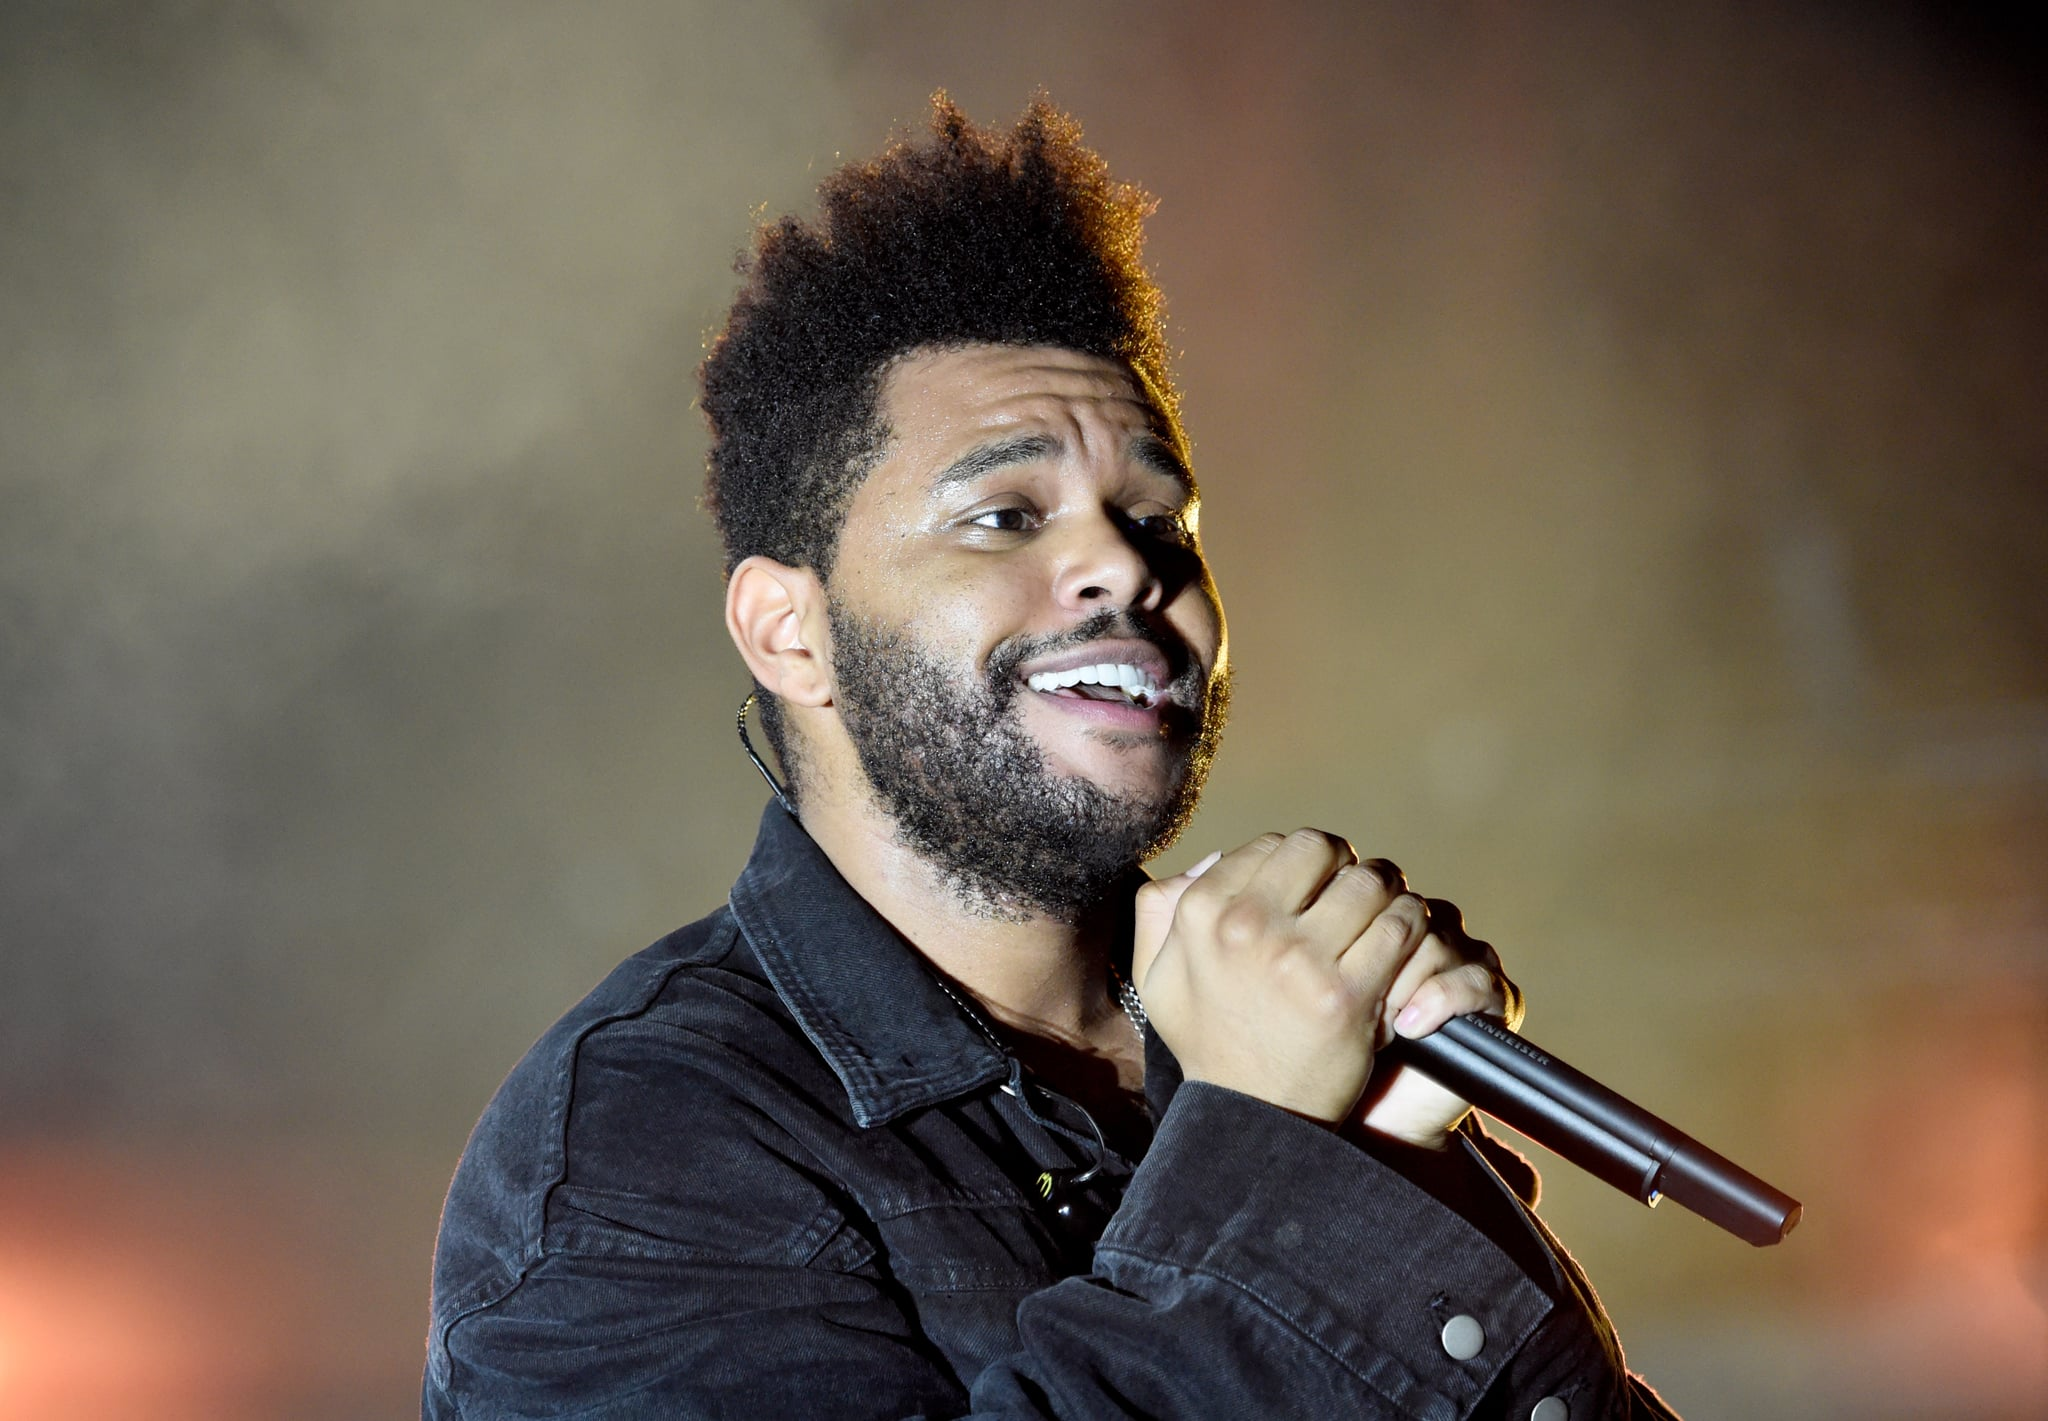 NEW YORK, NY - SEPTEMBER 29:  The Weeknd performs onstage during the 2018 Global Citizen Festival: Be The Generation in Central Park on September 29, 2018 in New York City.  (Photo by Kevin Mazur/Getty Images for Global Citizen)